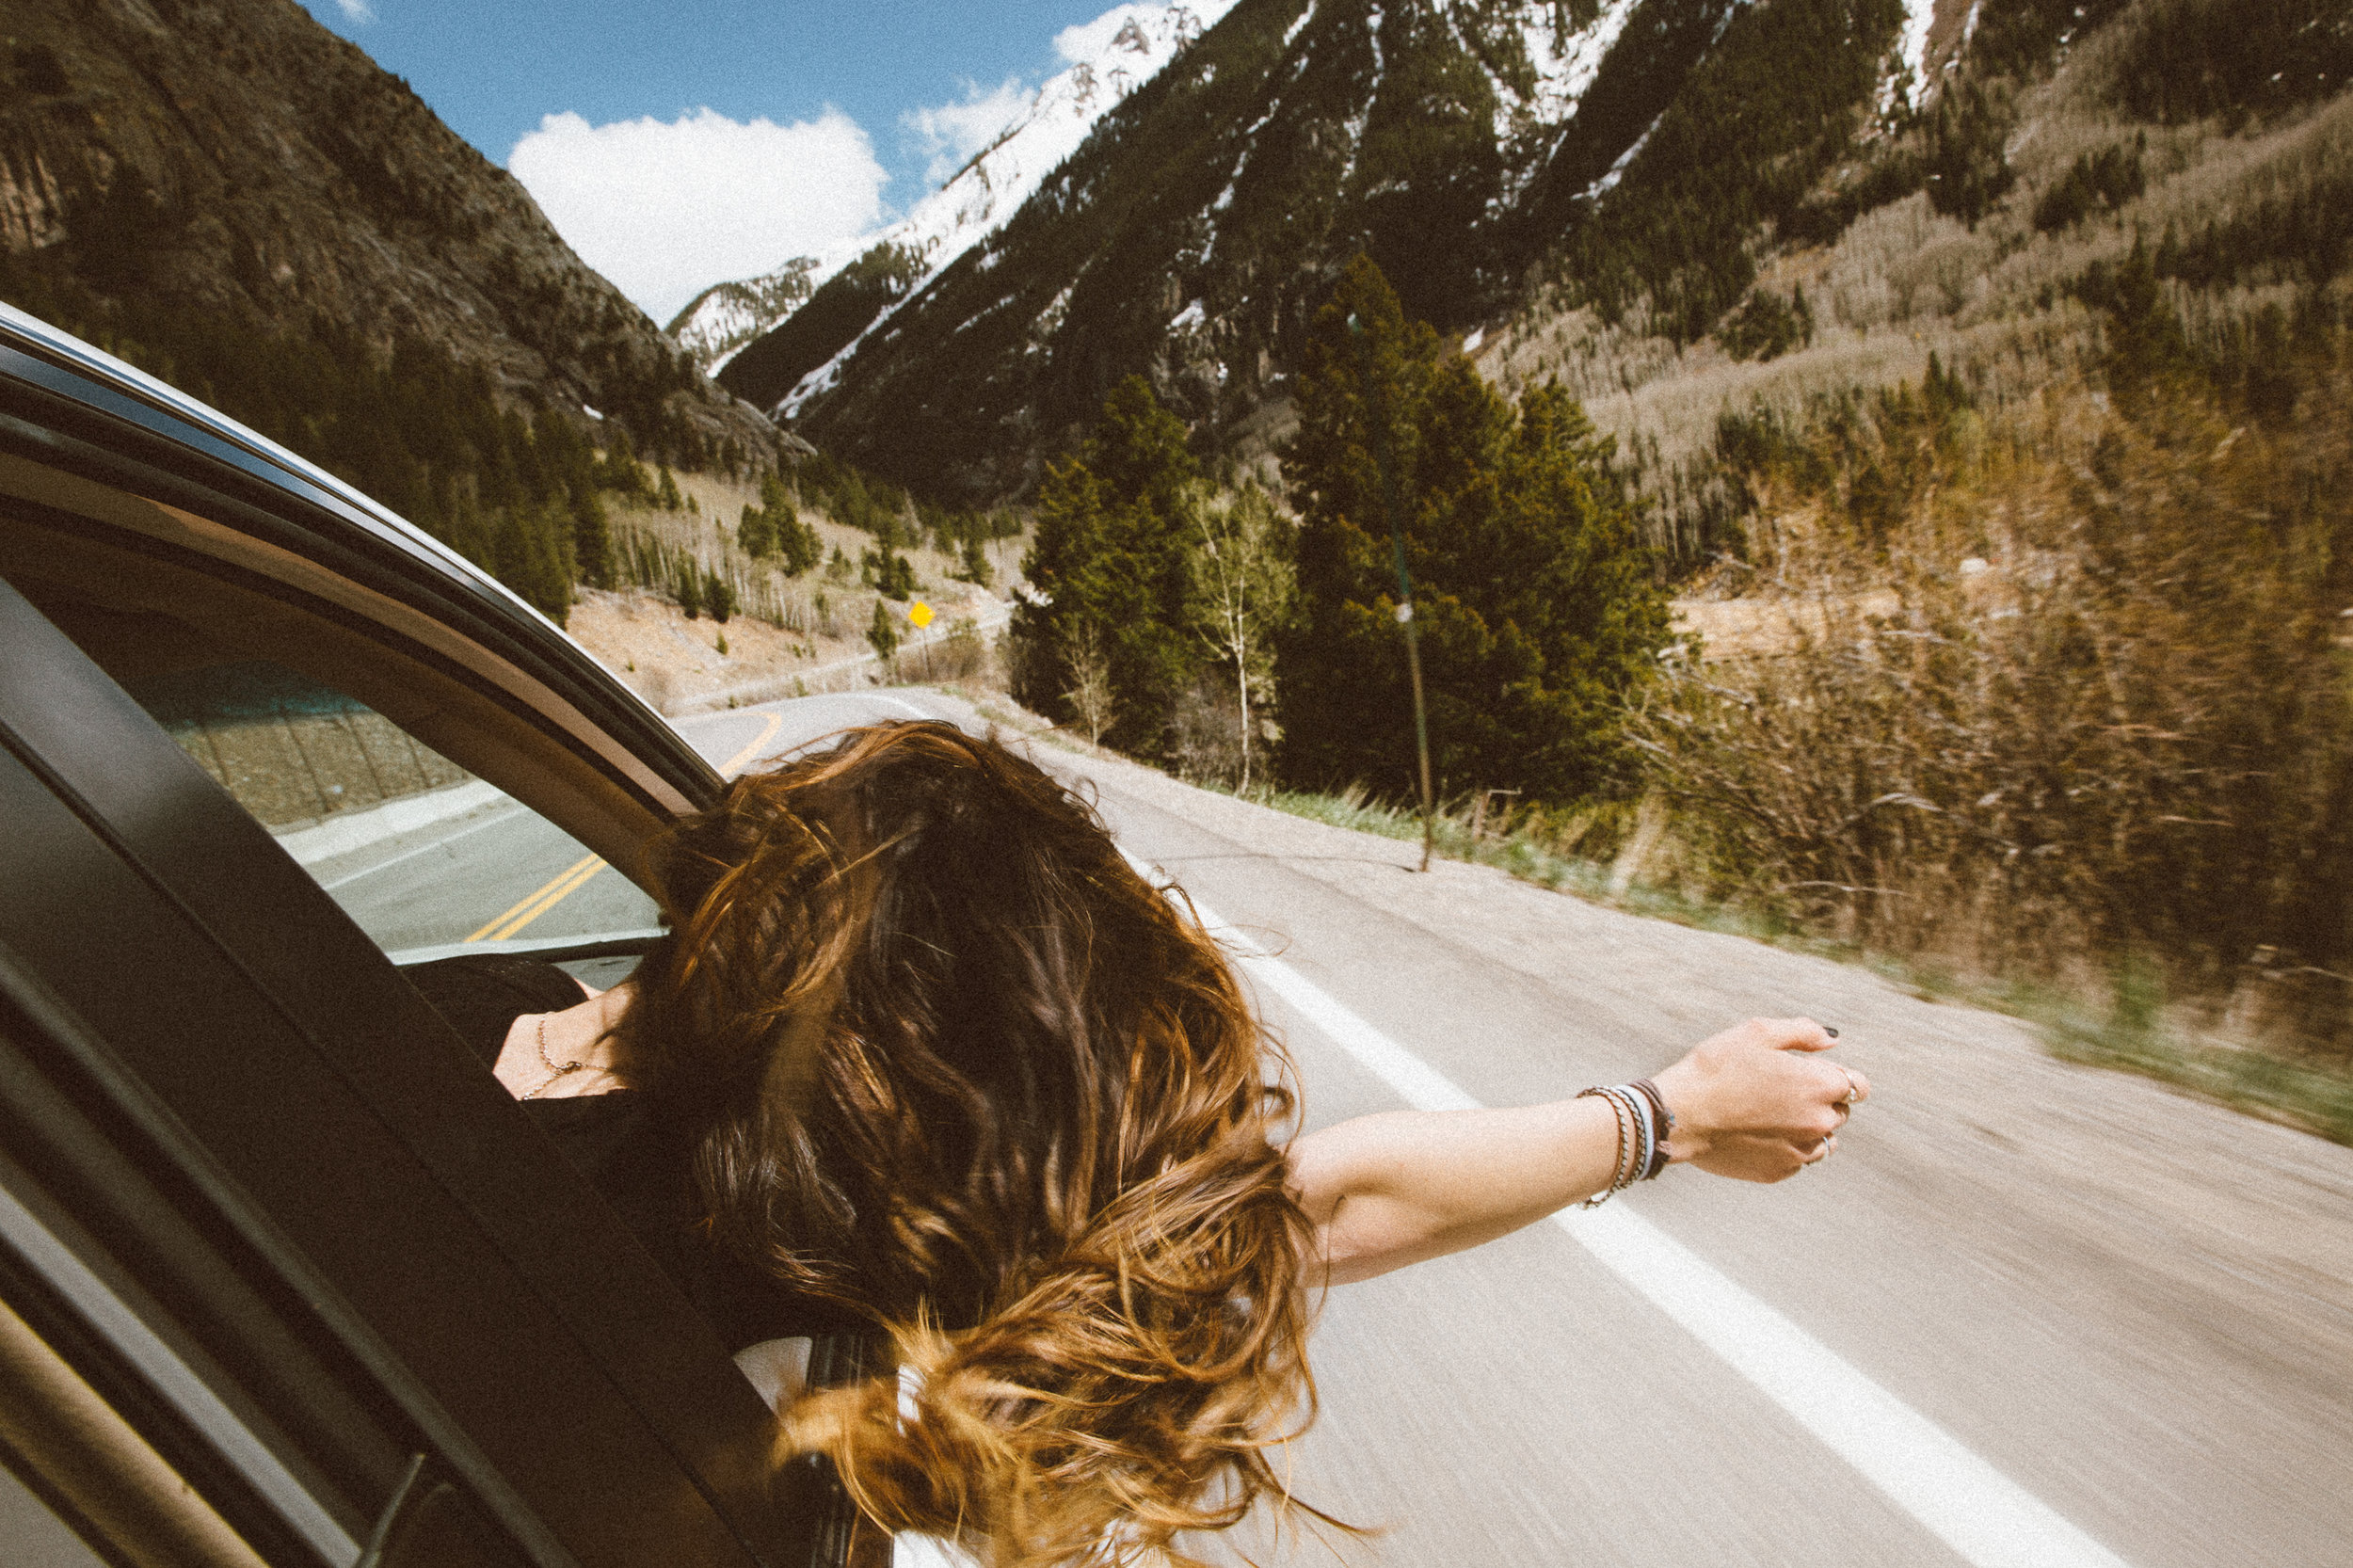 the Ultimate road-trip - One day surprise trips